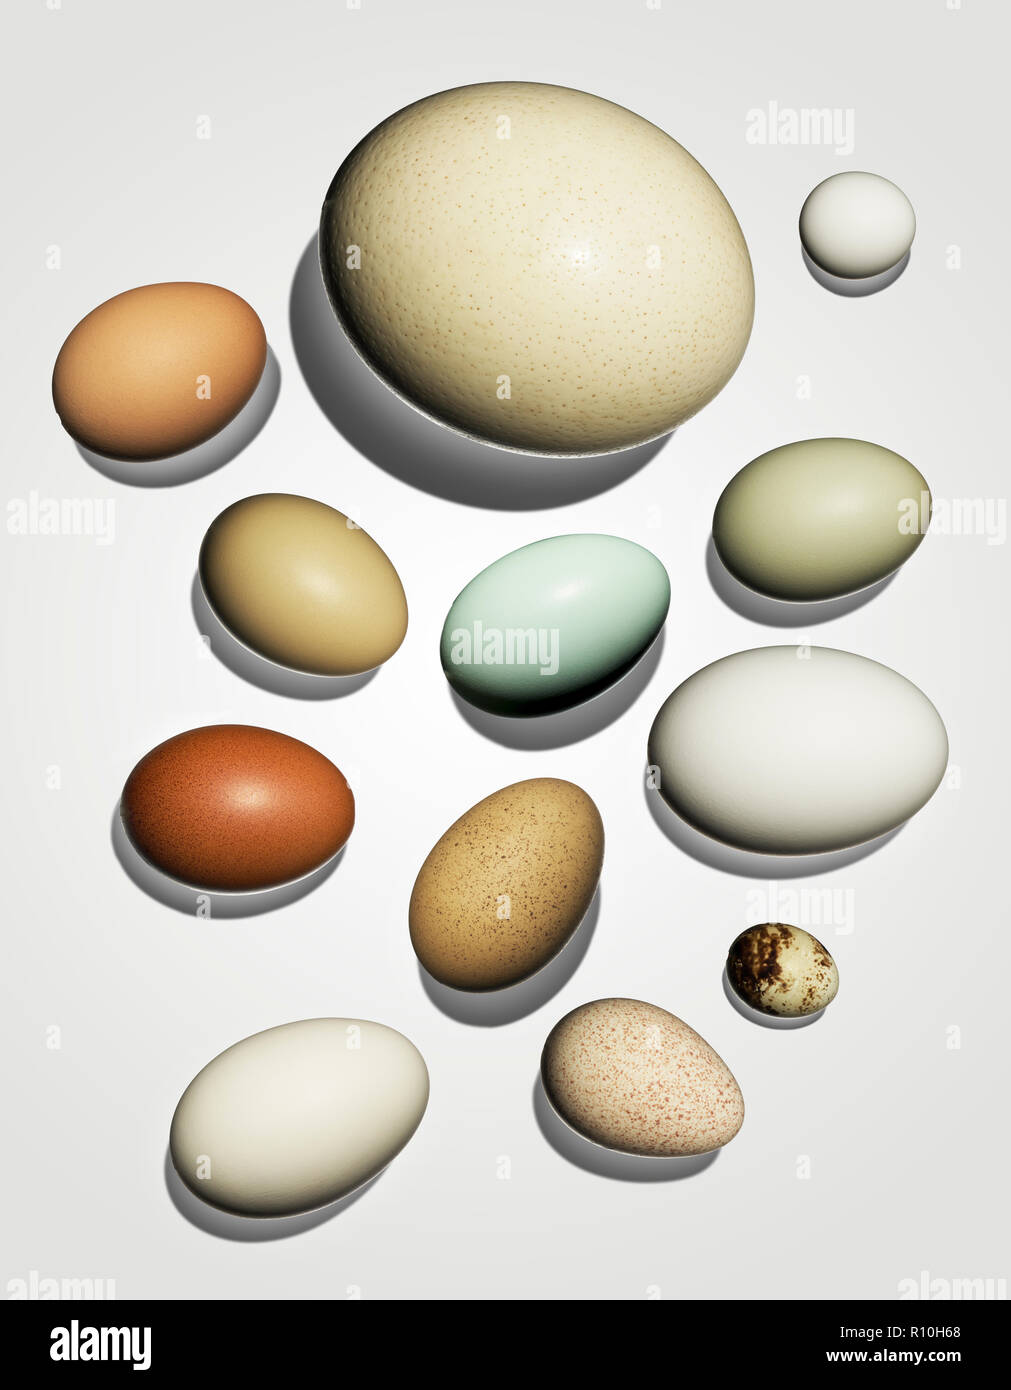 Collection of eggs, varying sizes and colors, white background - Stock Image